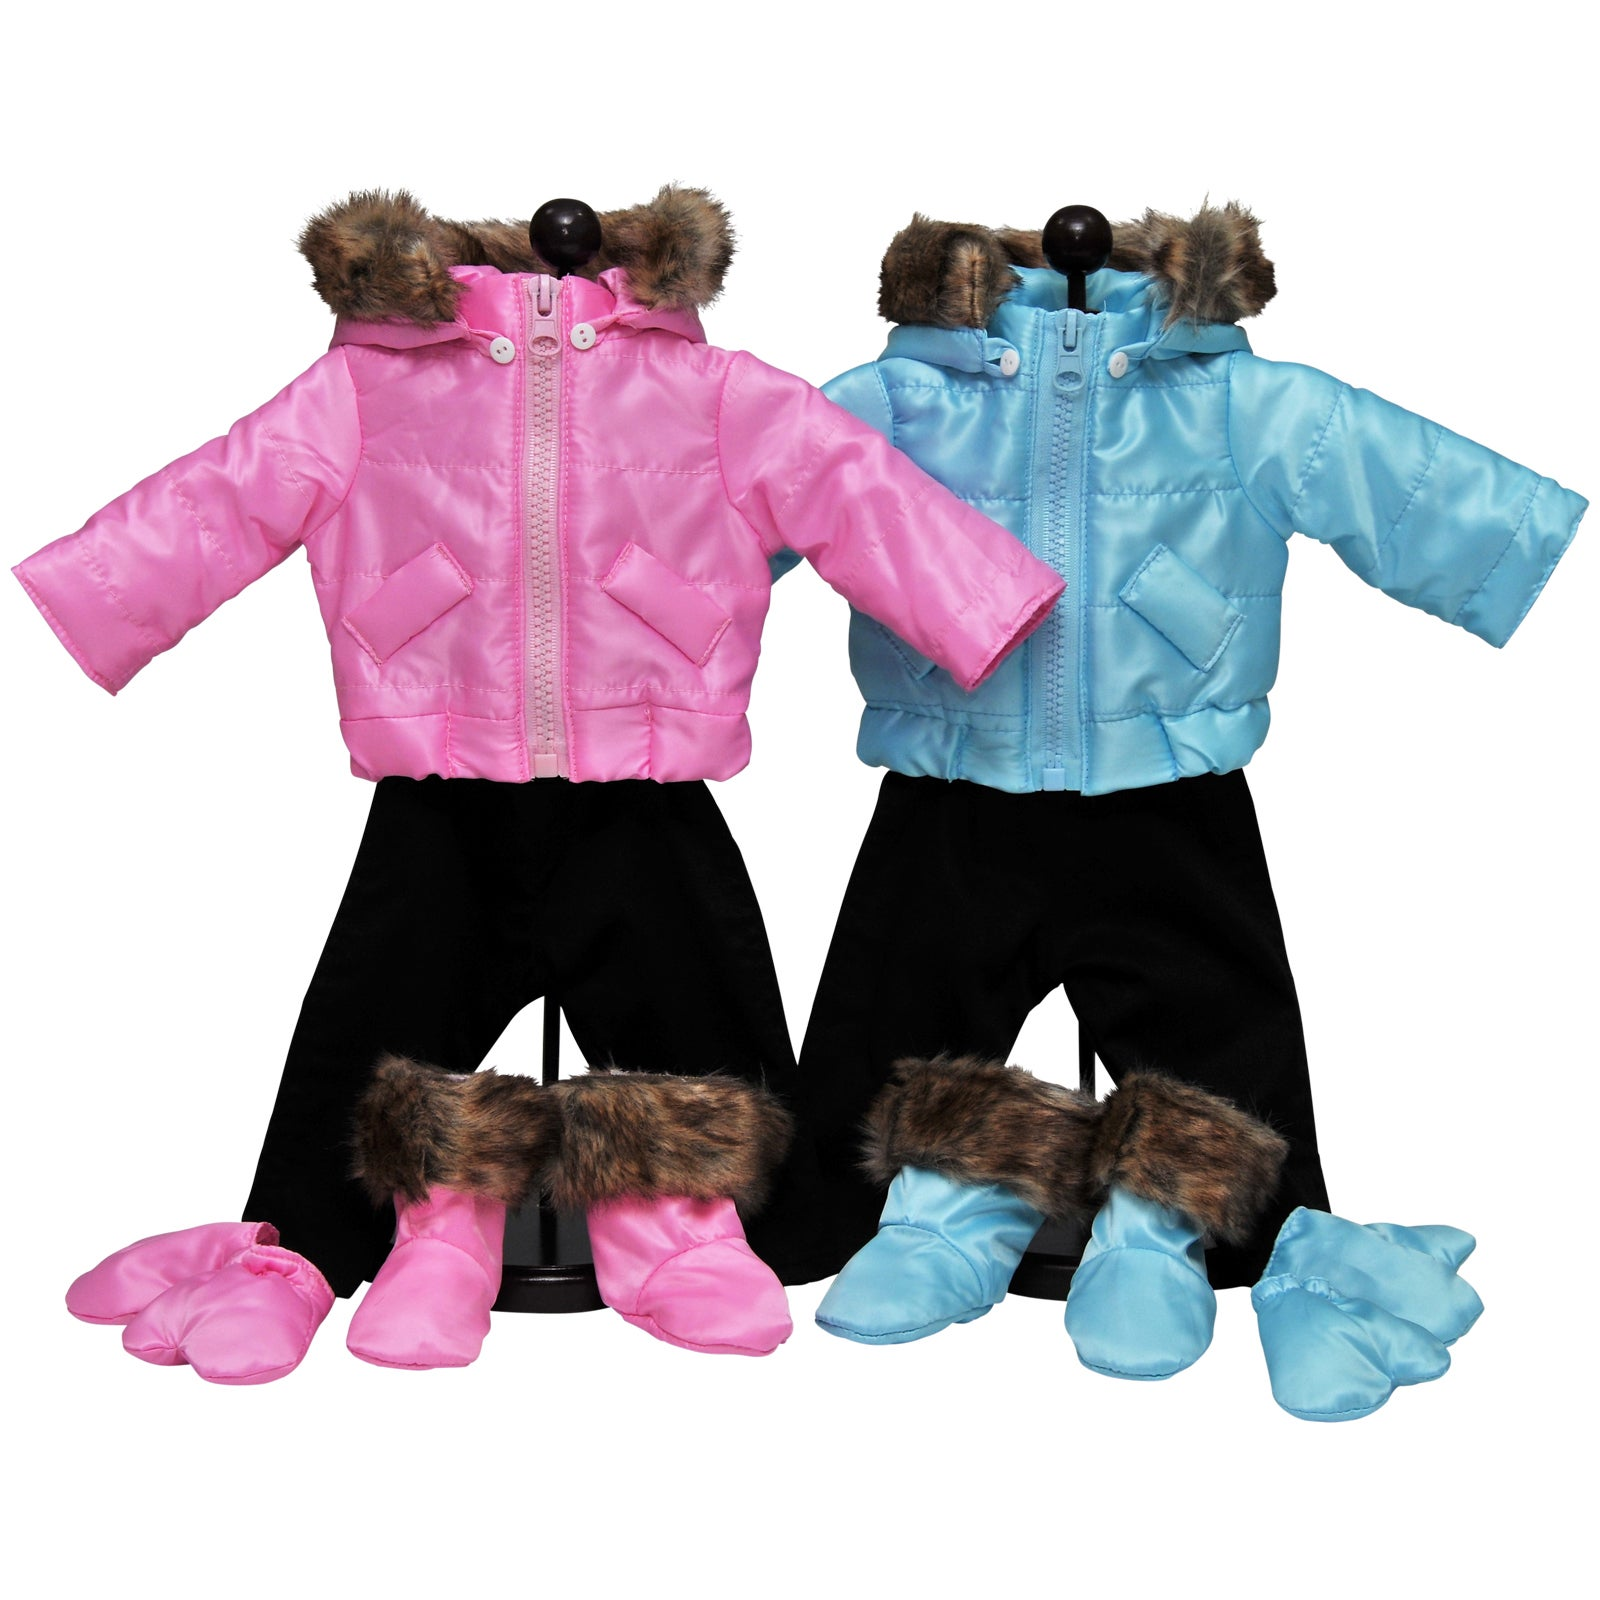 The Queen's Treasures Pink & Blue Outdoor Ski Outfits For...